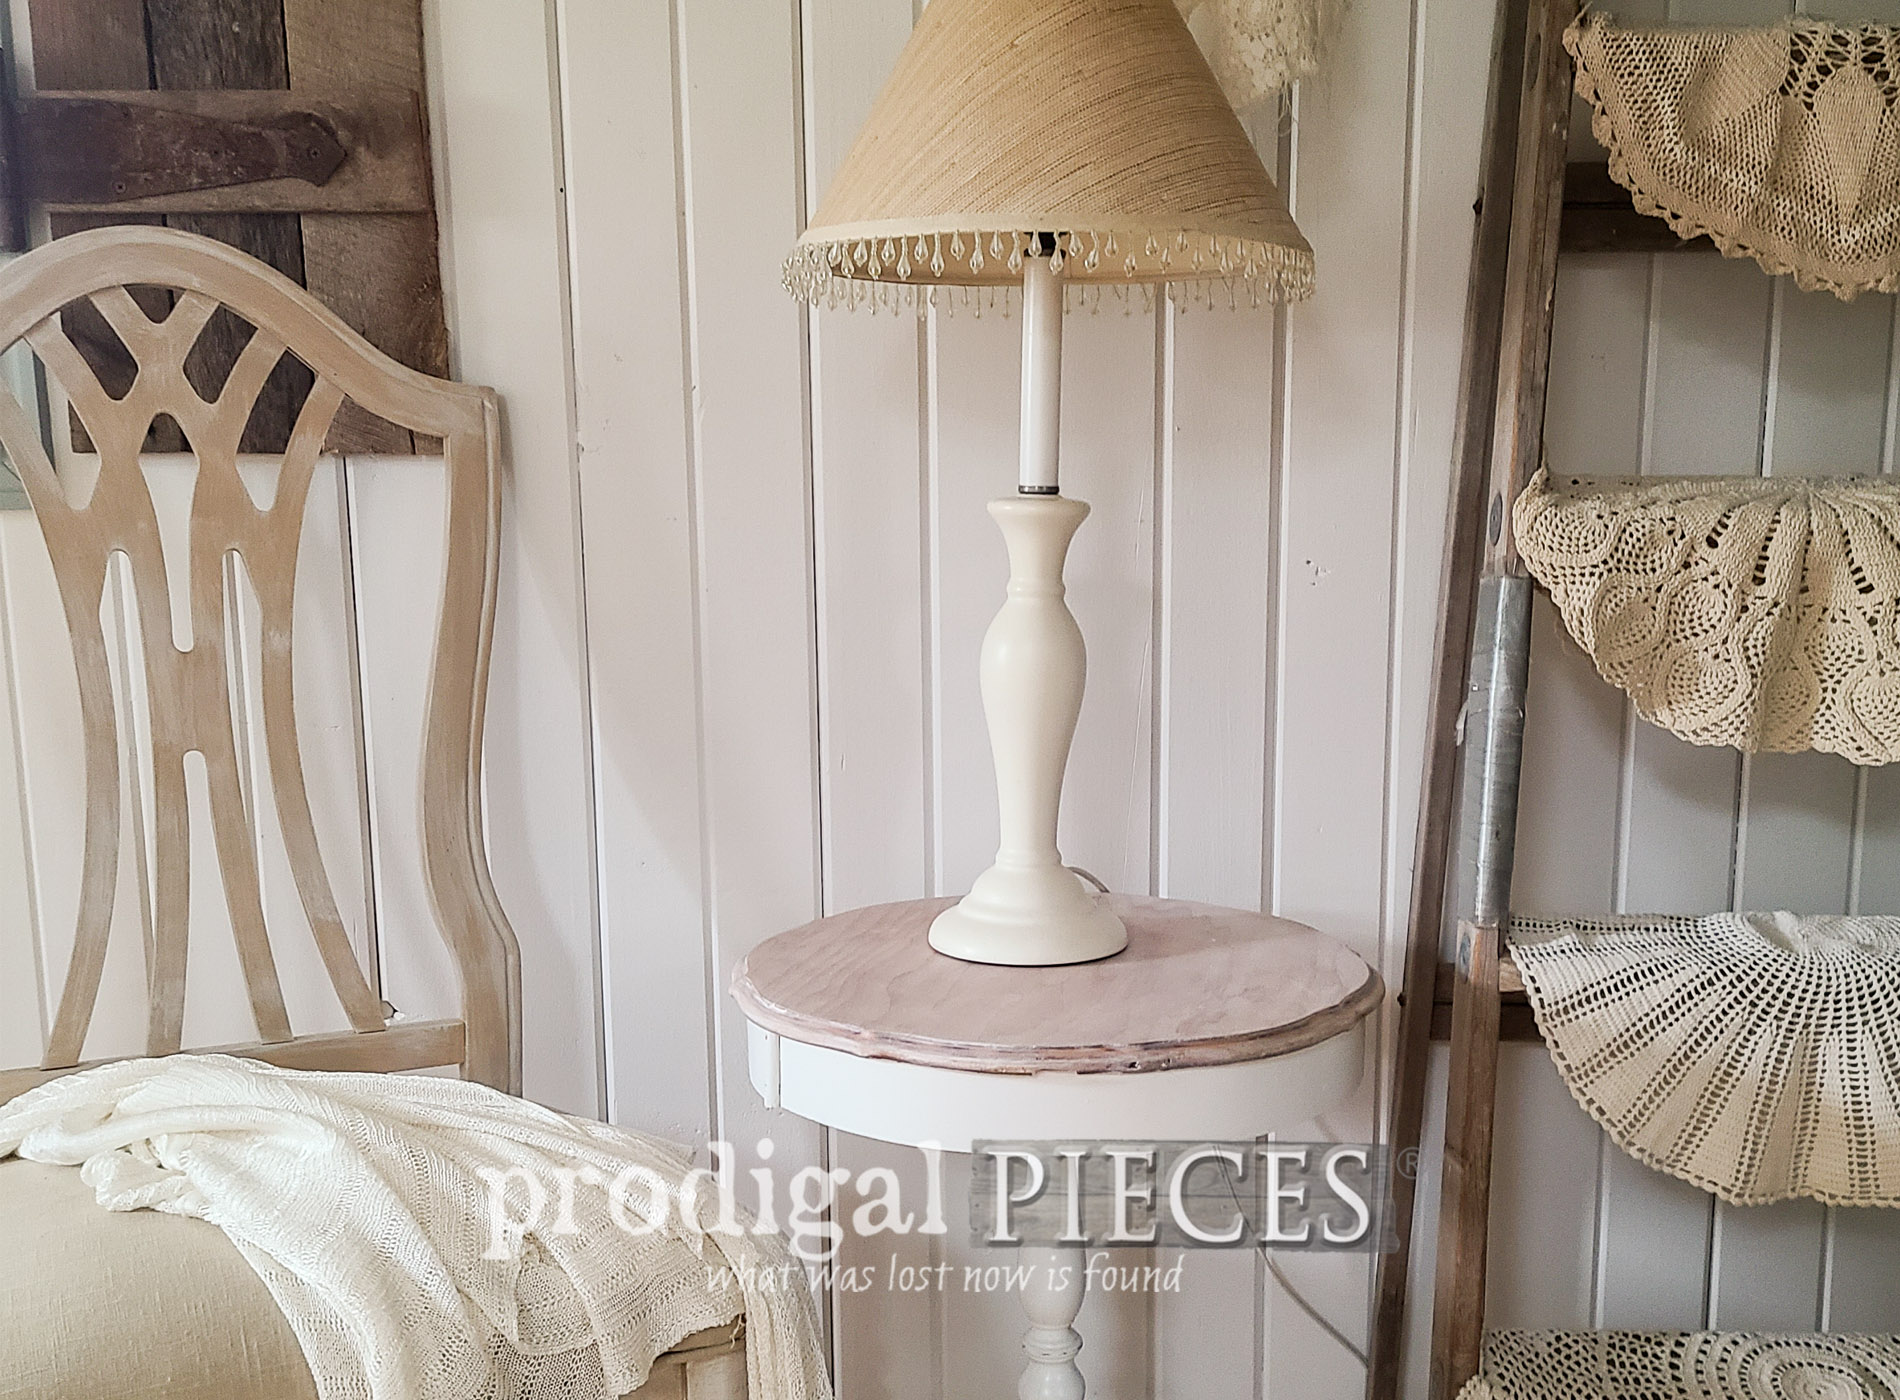 Featured Upholstered Chair Makeover by Larissa of Prodigal Pieces   prodigalpieces.com #prodigalpieces #furniture #diy #home #upholstery #homedecor #vintage